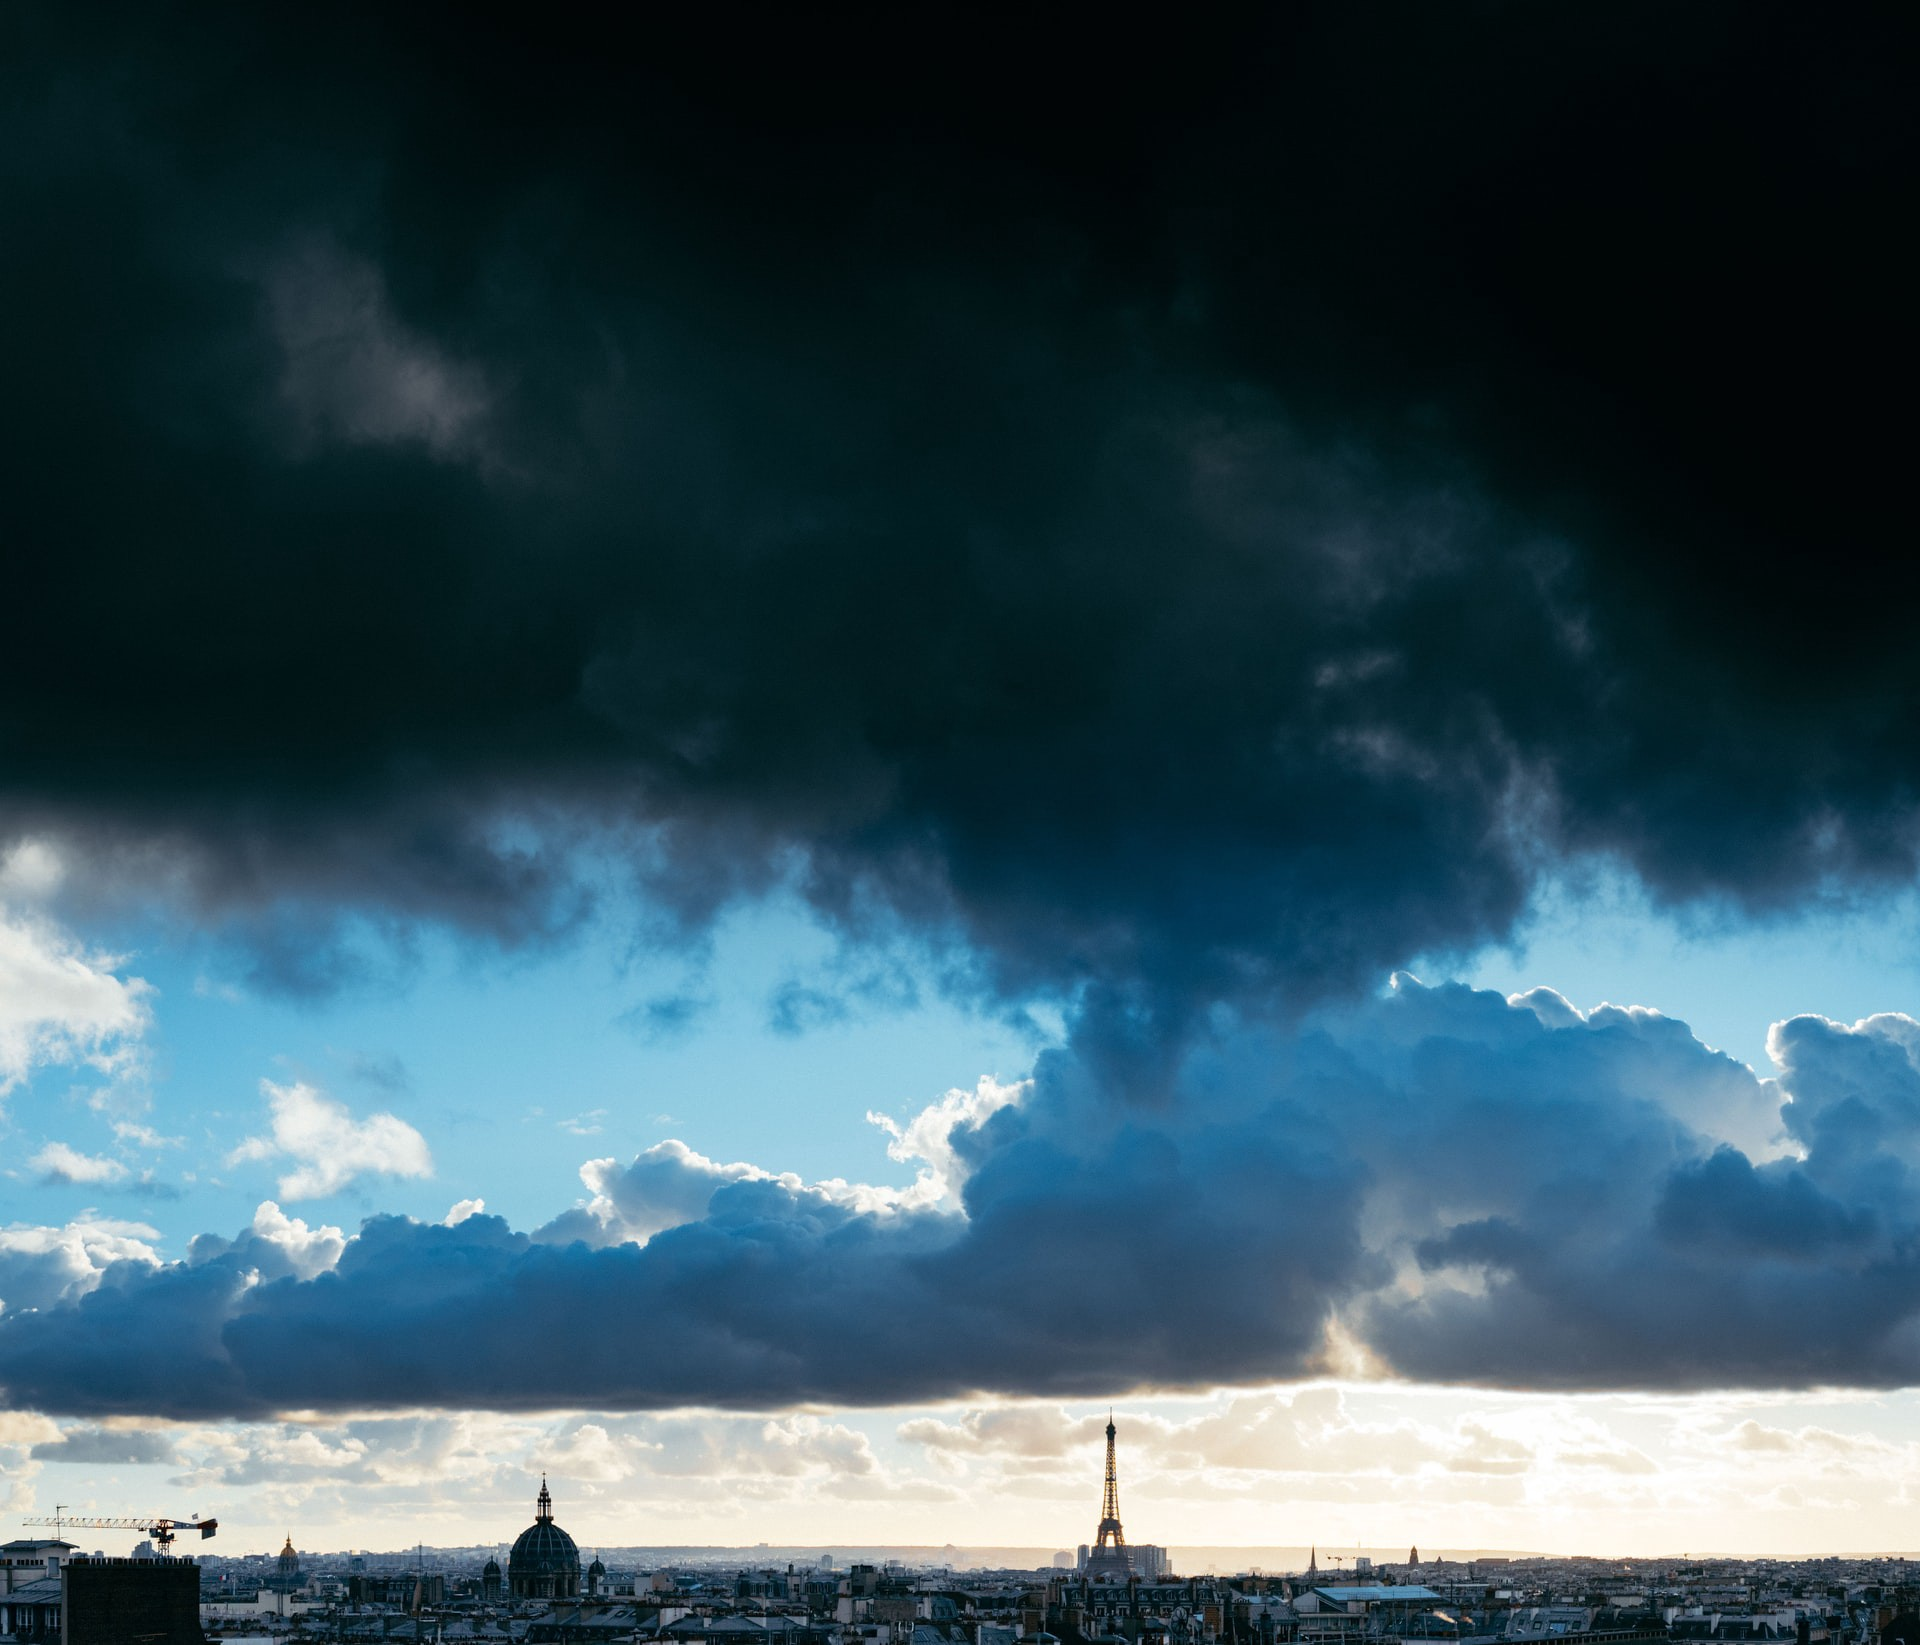 Silhouette of the Eiffel Tower in Paris against a backdrop of dark clouds.